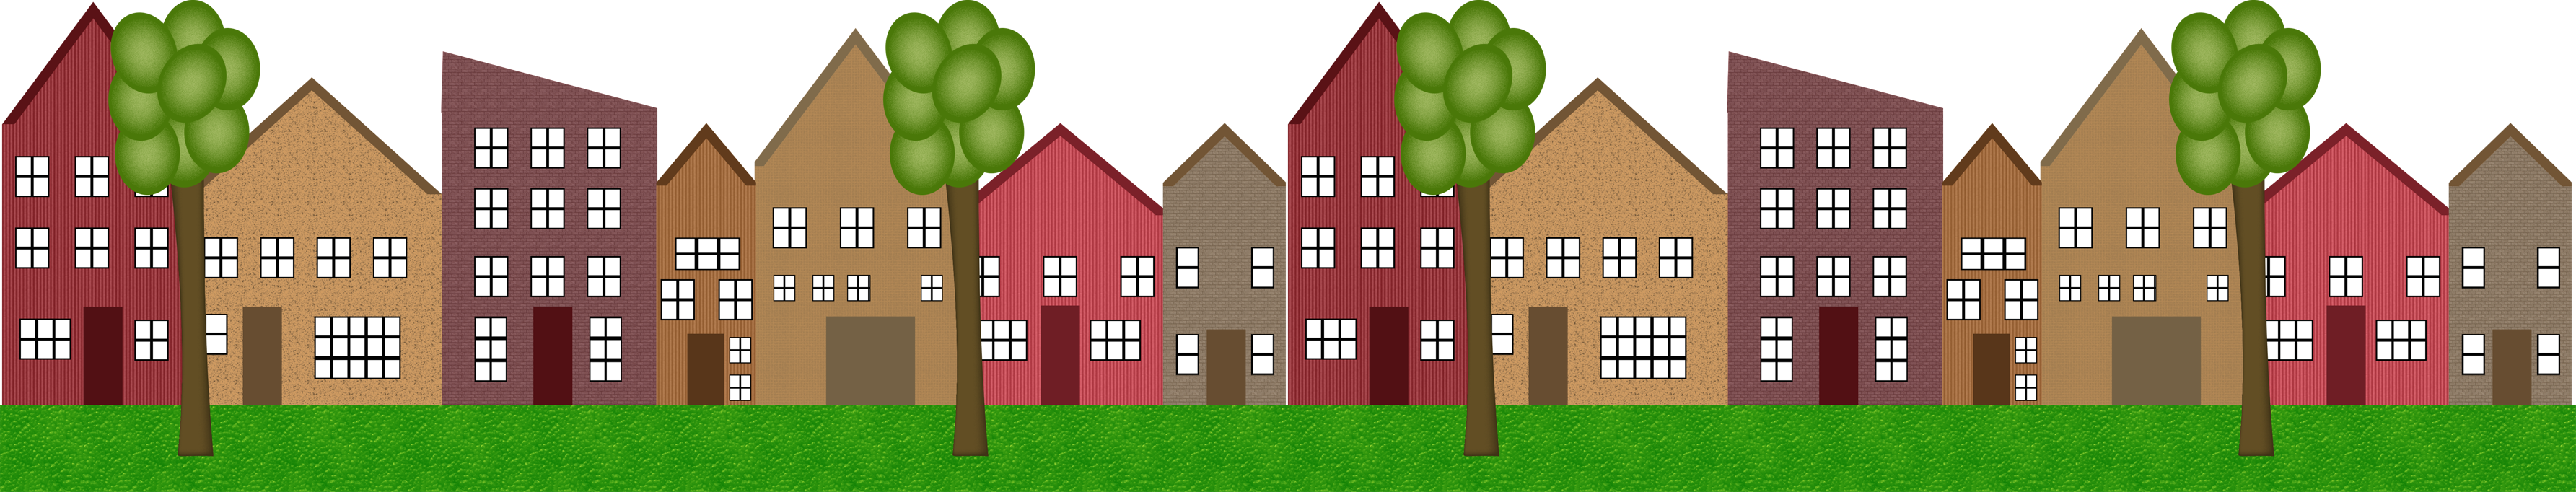 Terraced House Png - Home clipart terraced house, Home terraced house Transparent FREE ...